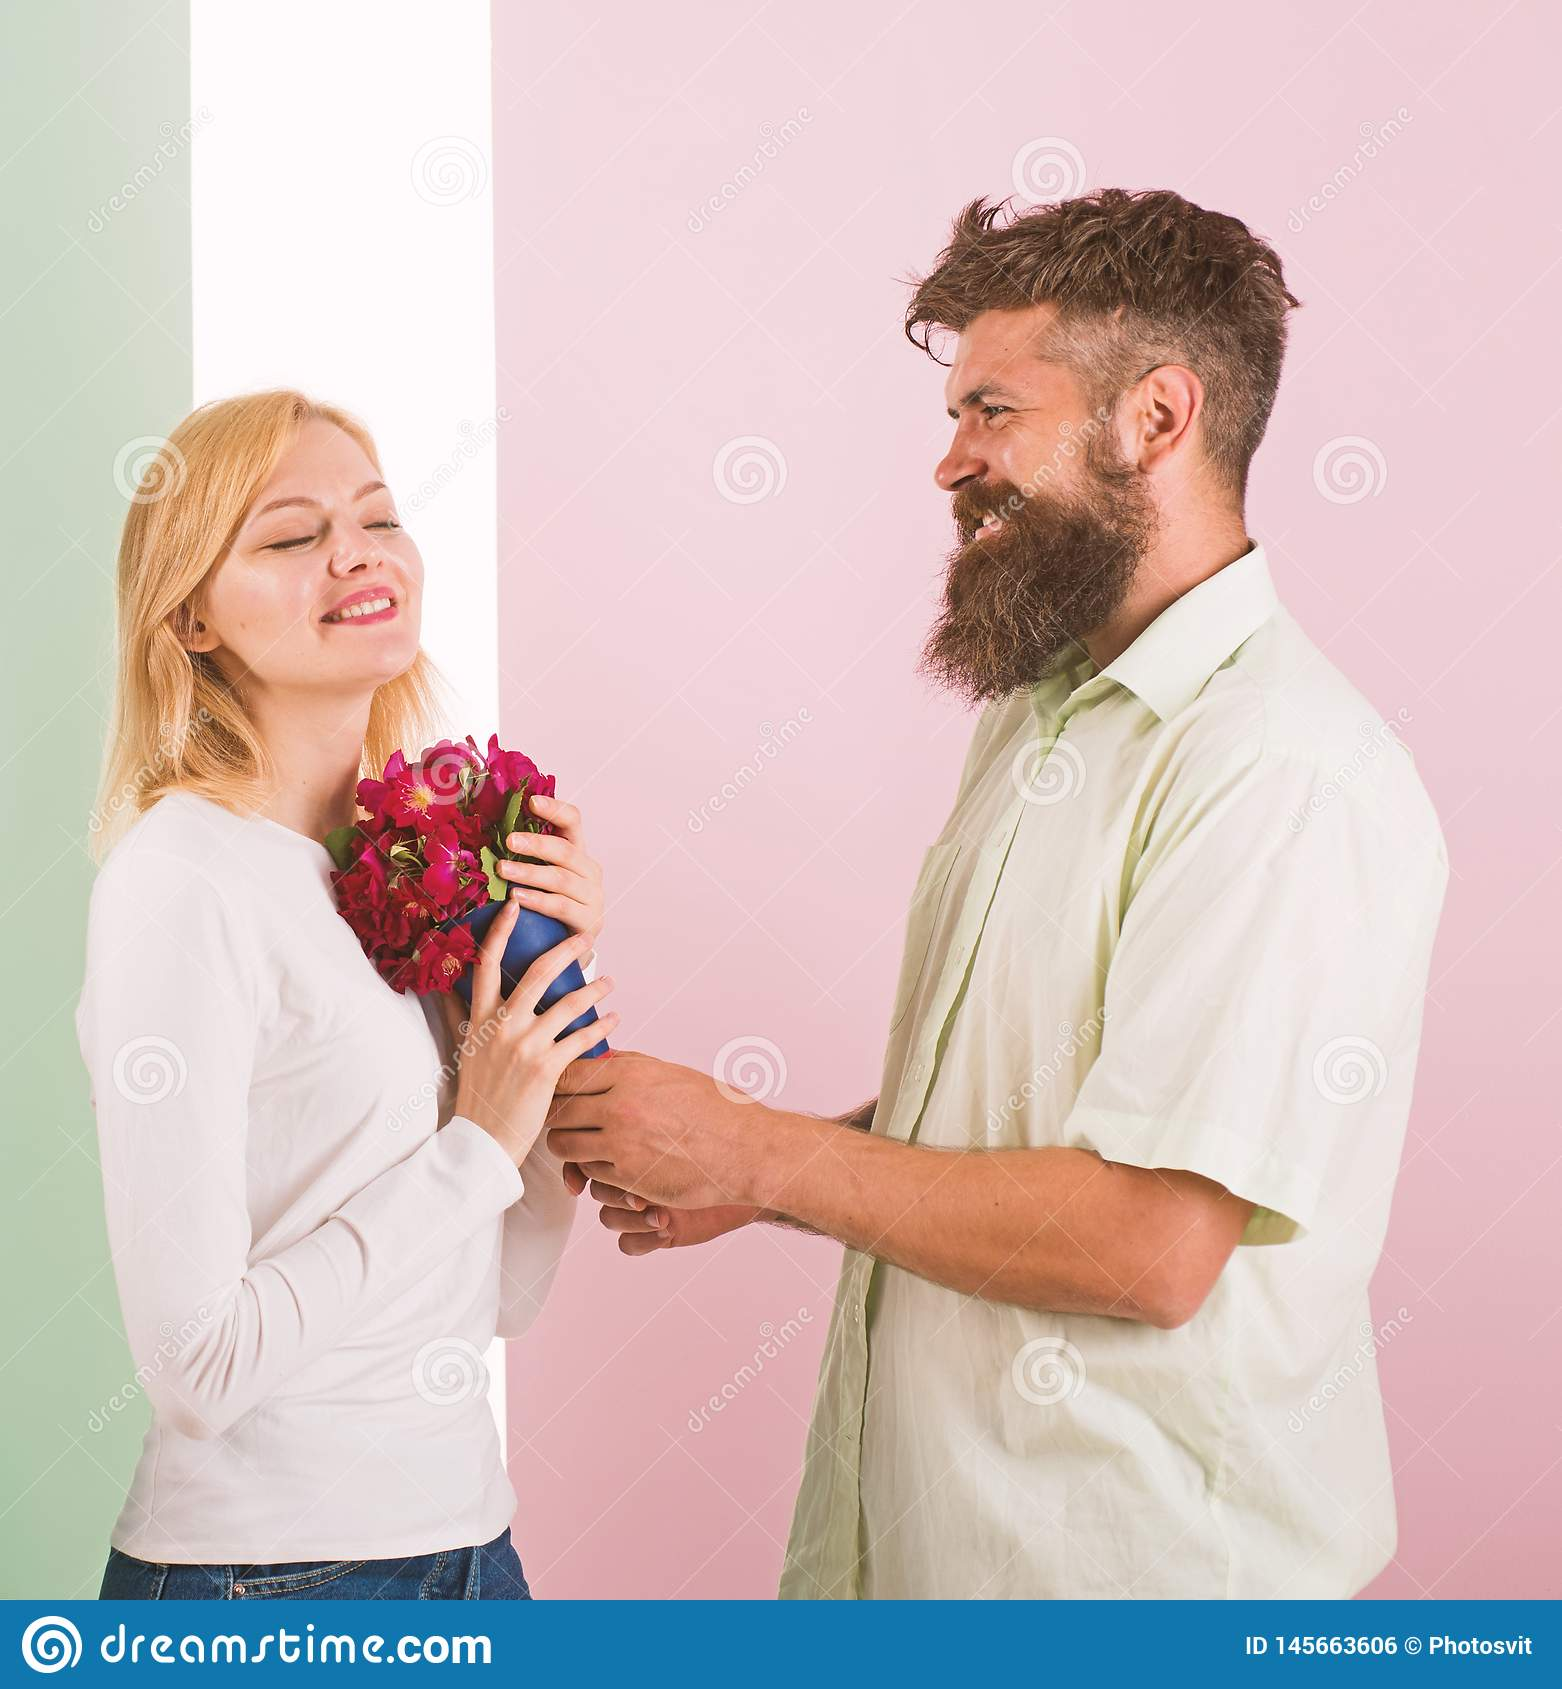 Man with beard congratulates woman birthday anniversary holiday. Hipster bearded give bouquet flowers to girlfriend